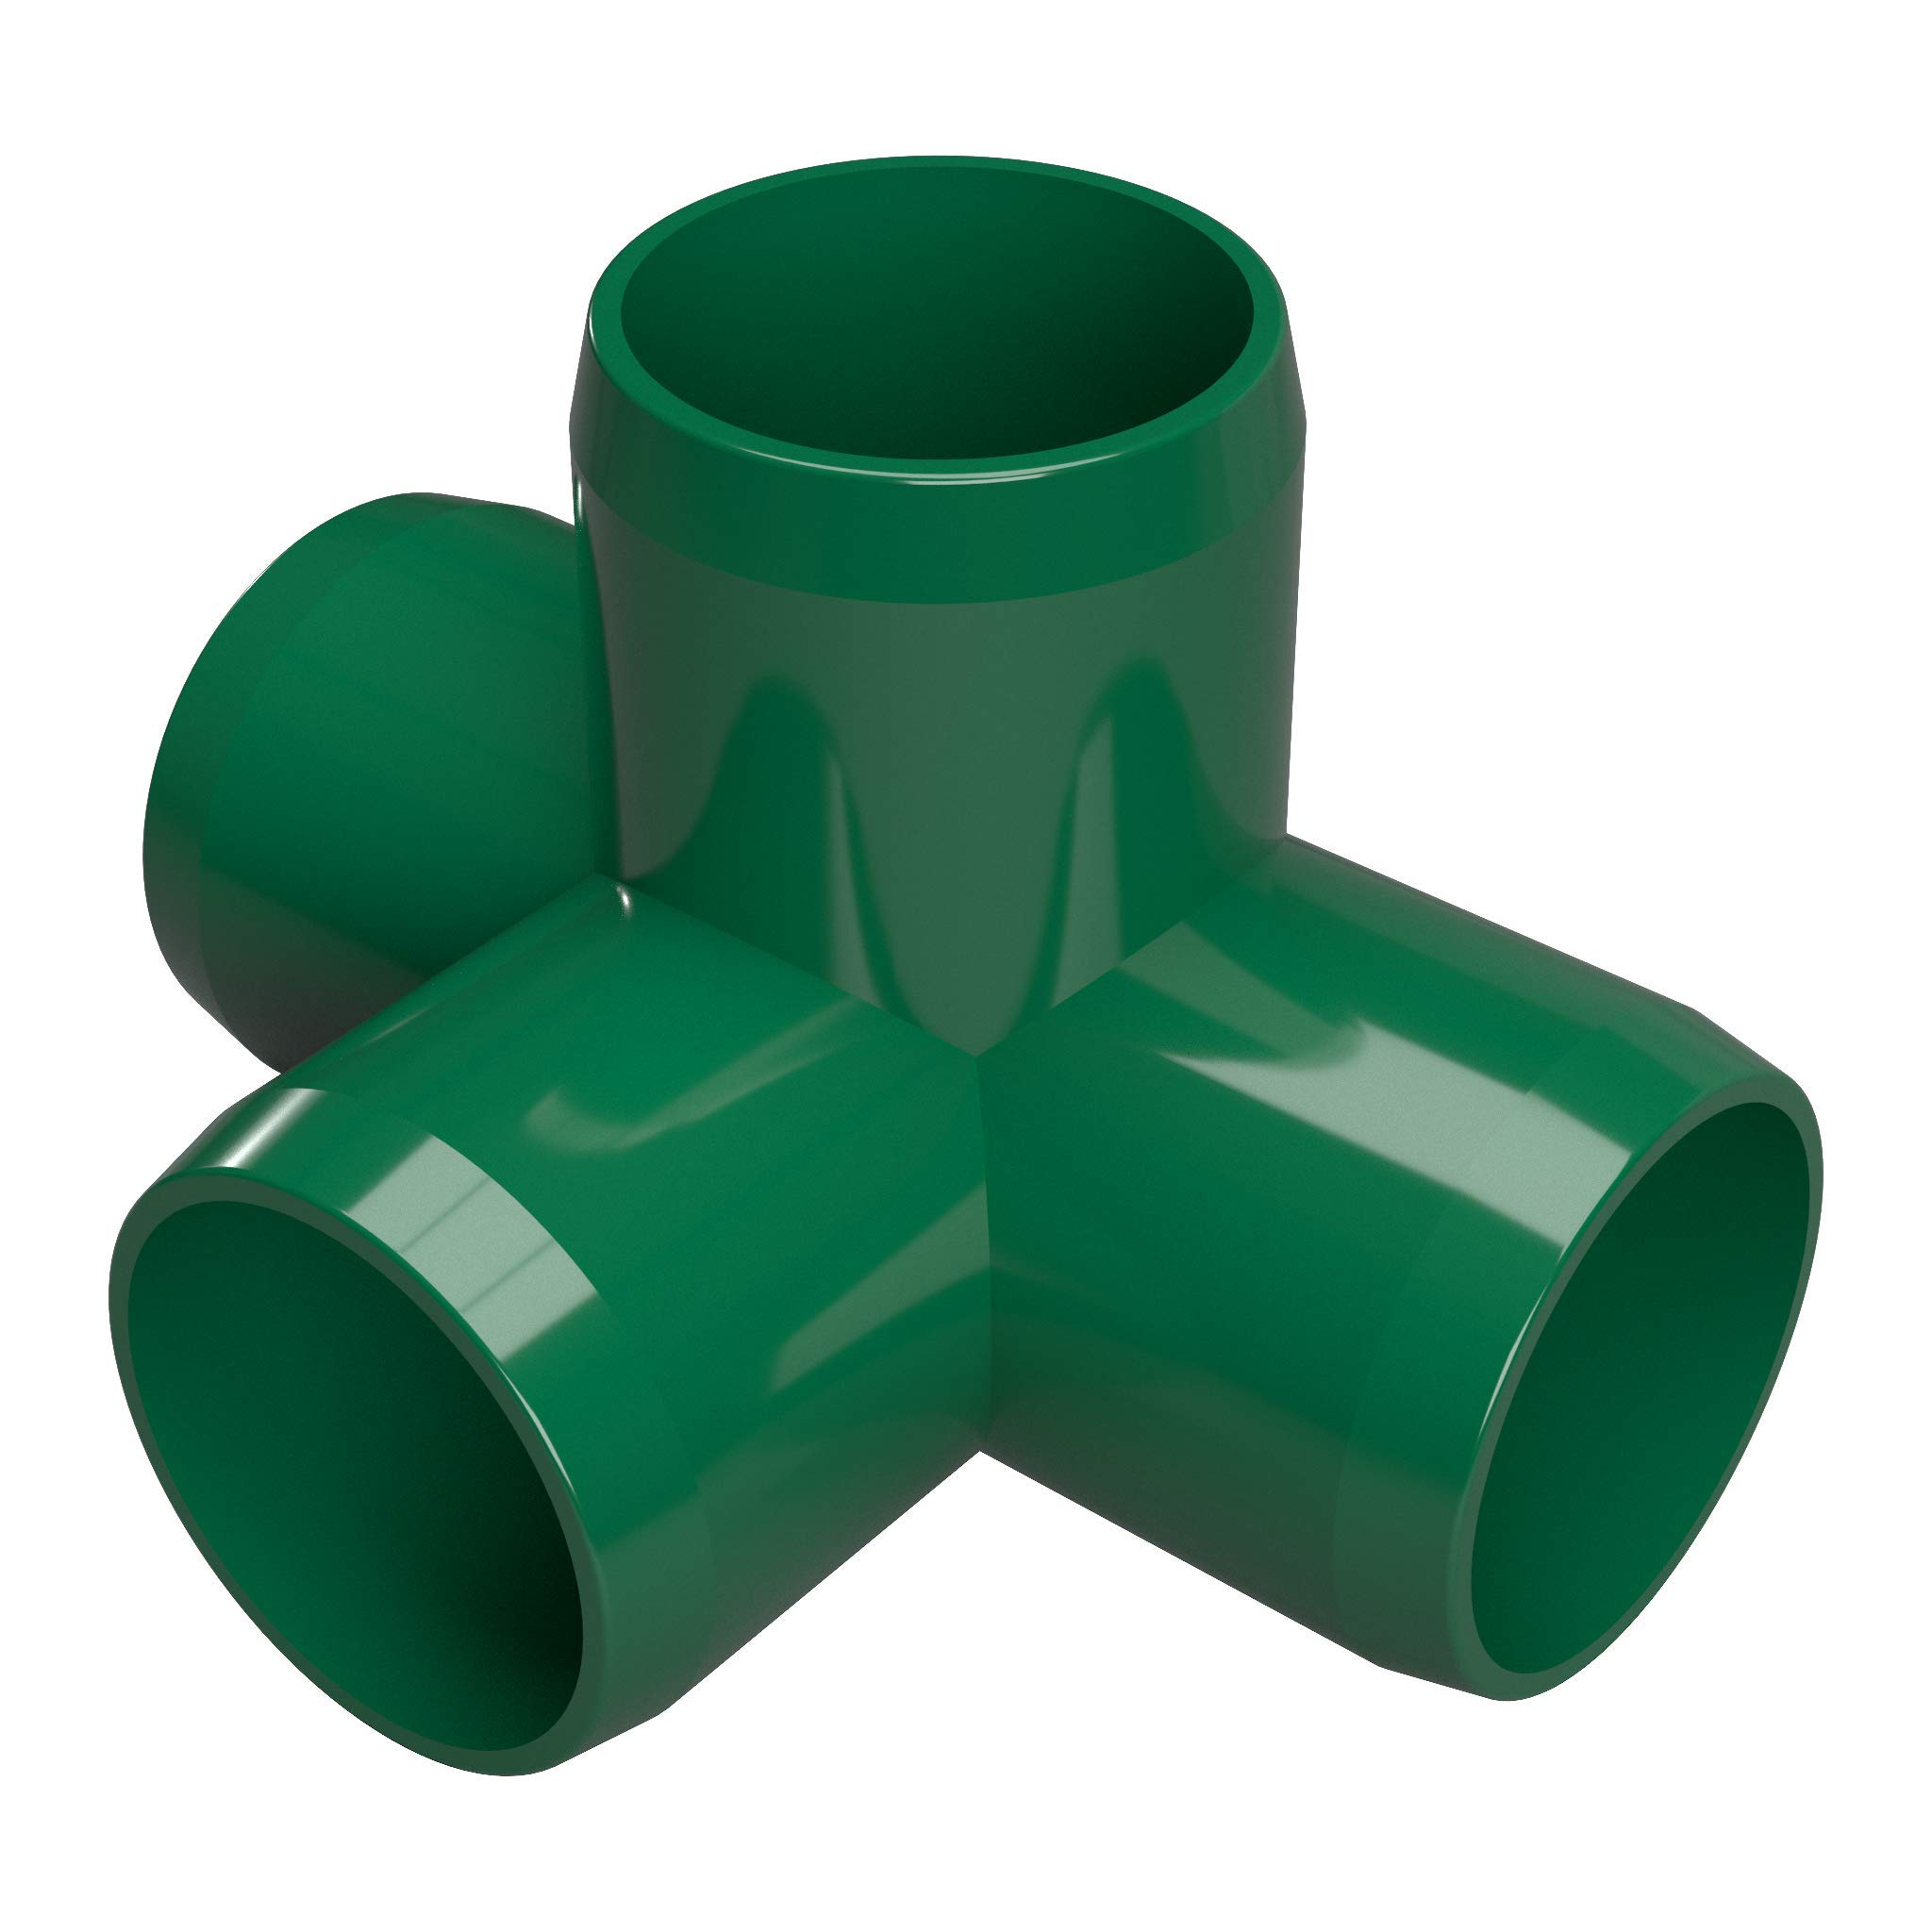 FORMUFIT F0344WT-GR-8 4-Way Tee PVC Fitting, Furniture Grade, 3/4'' Size, Green (Pack of 8)